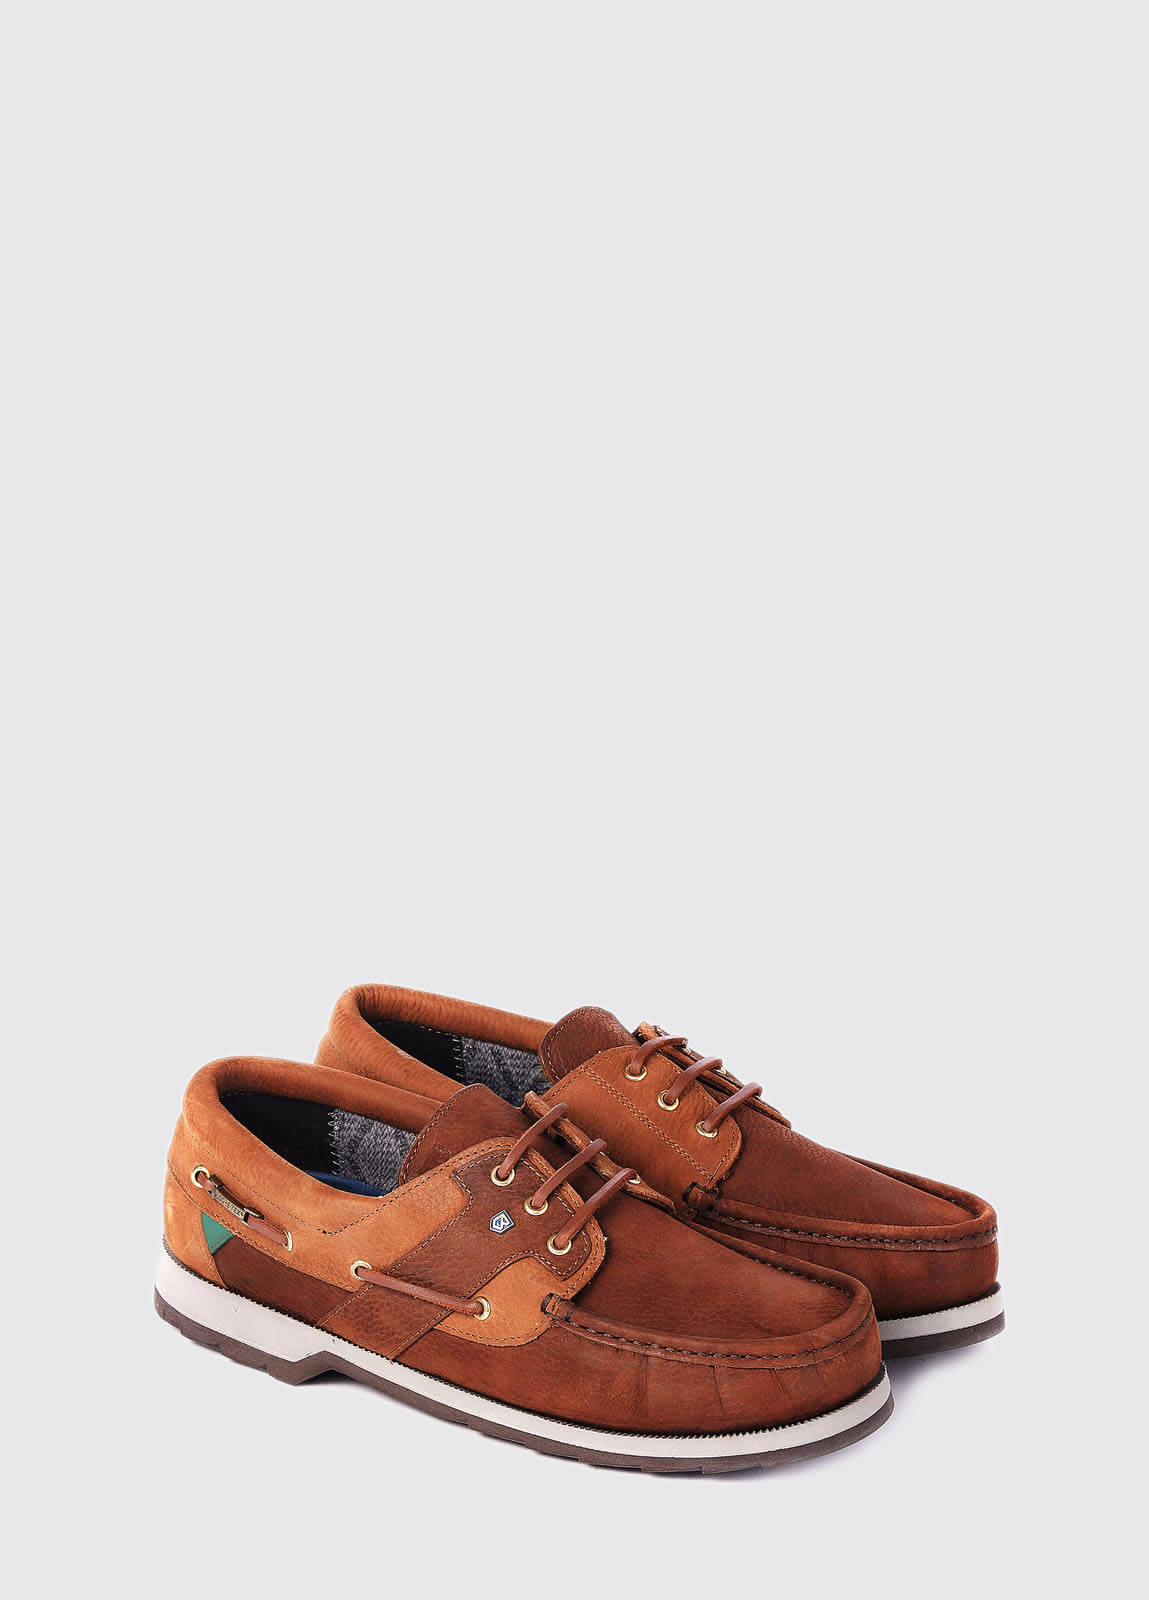 Clipper Deck Shoe - Brown